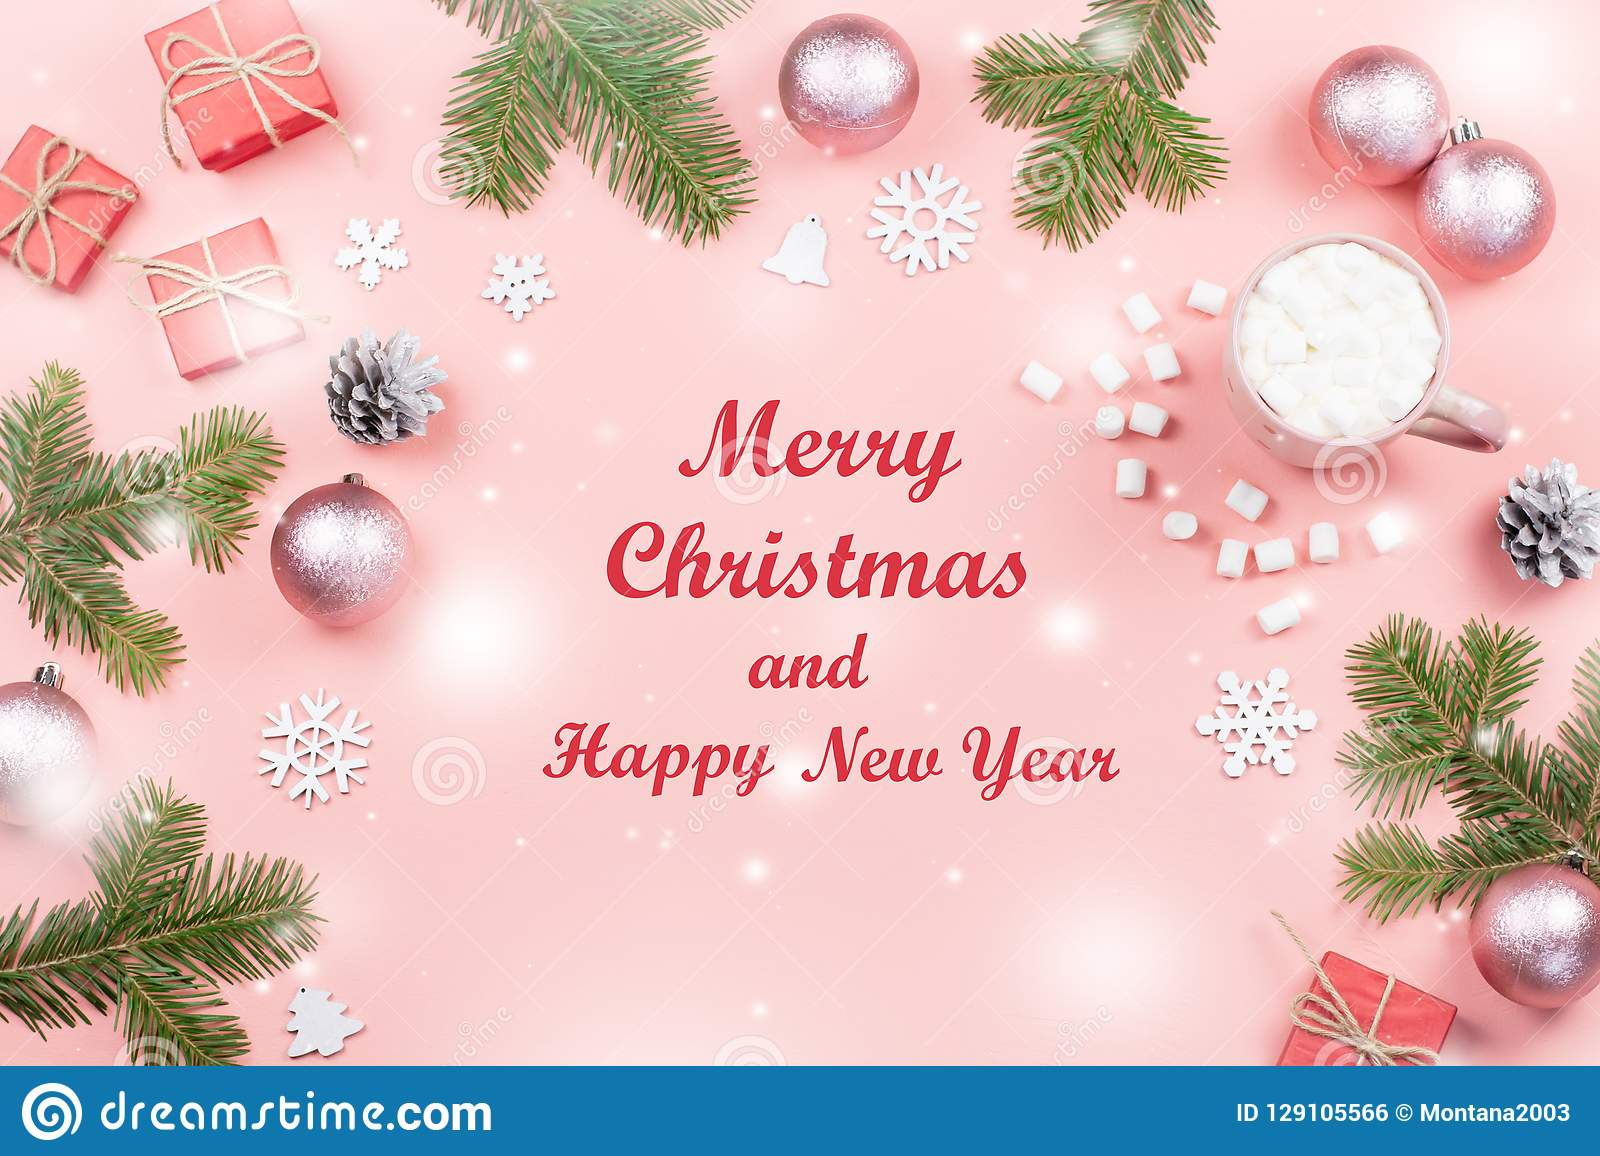 Merry Christmas And Happy New Year Greeting Card ...